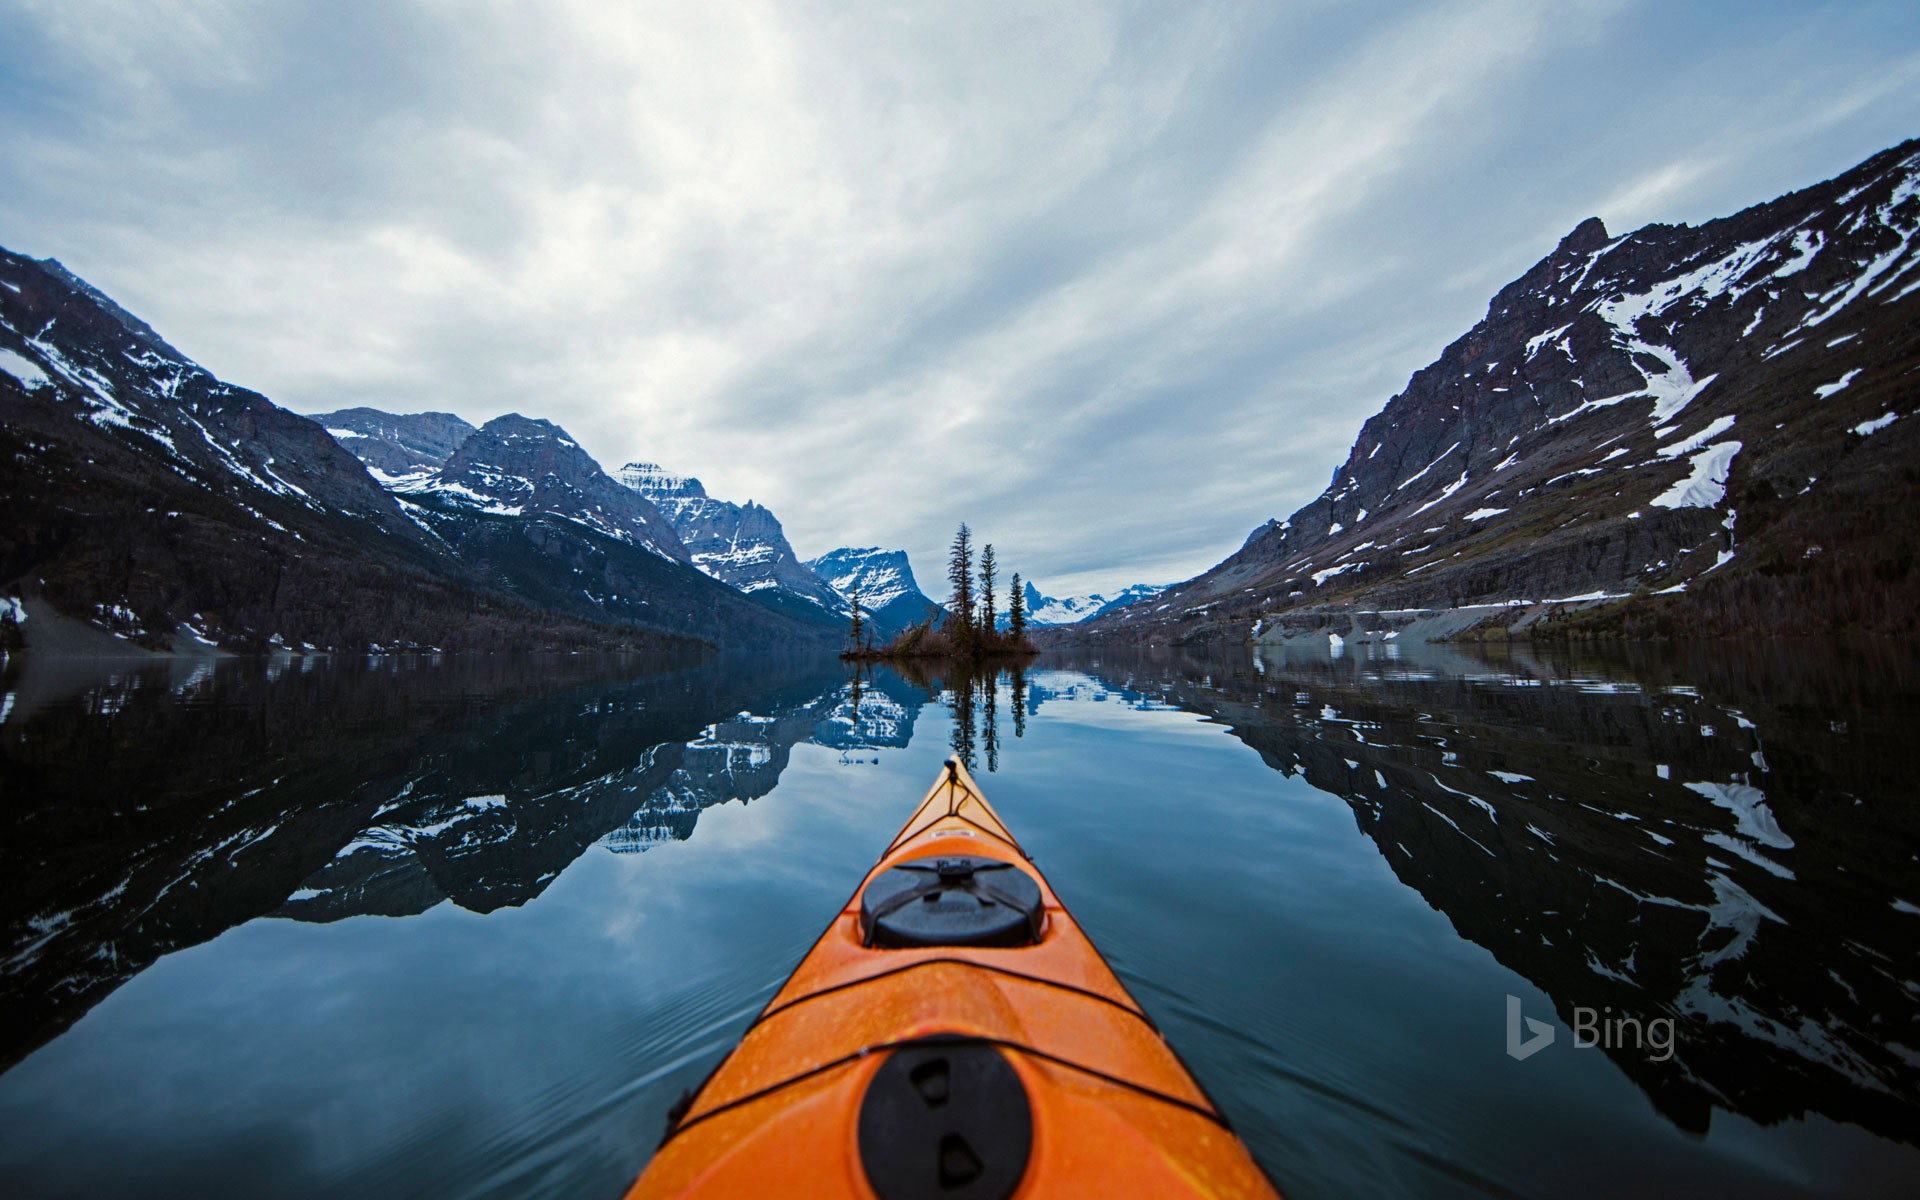 Kayaking in Glacier National Park, Montana